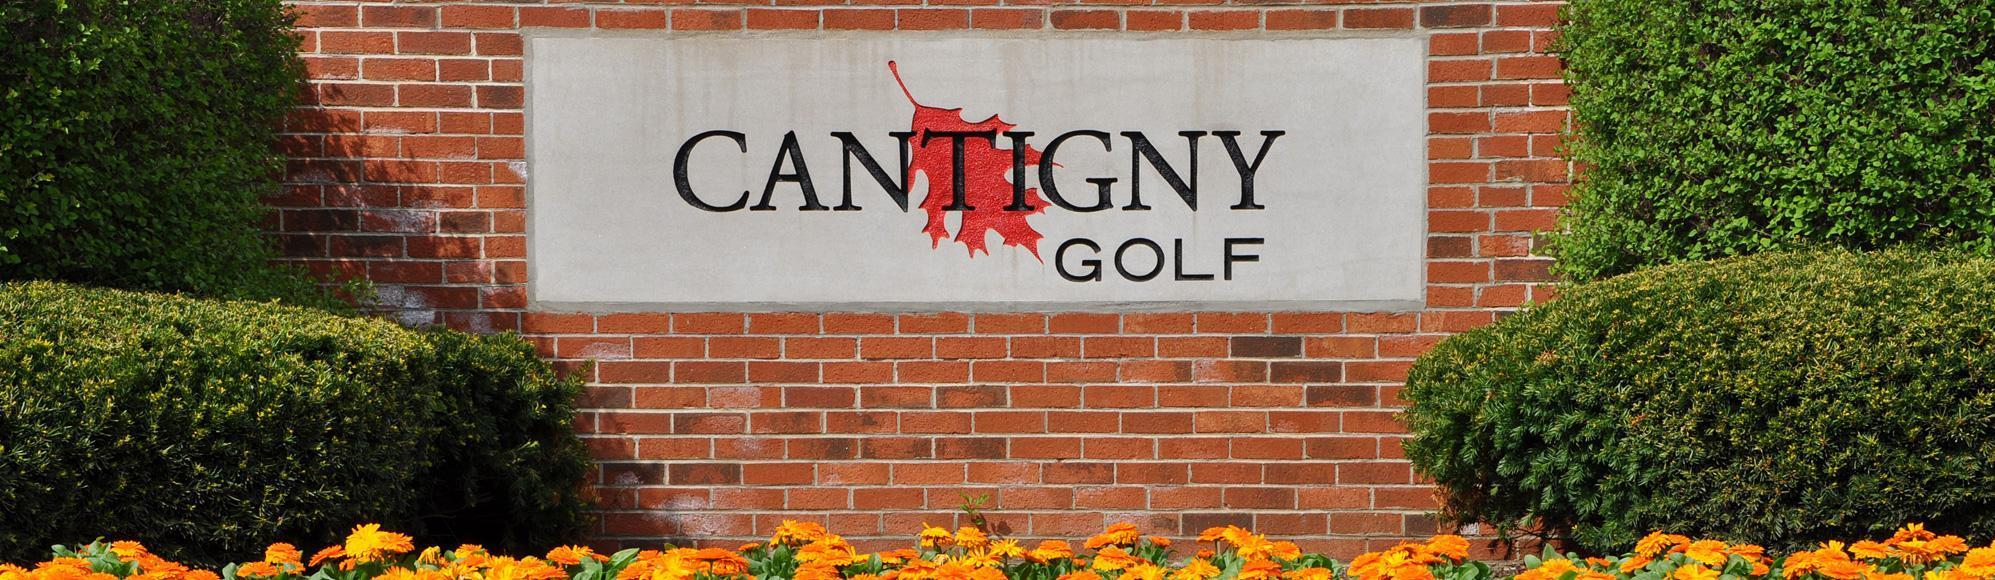 Cantigny Golf Club - Wheaton, IL on